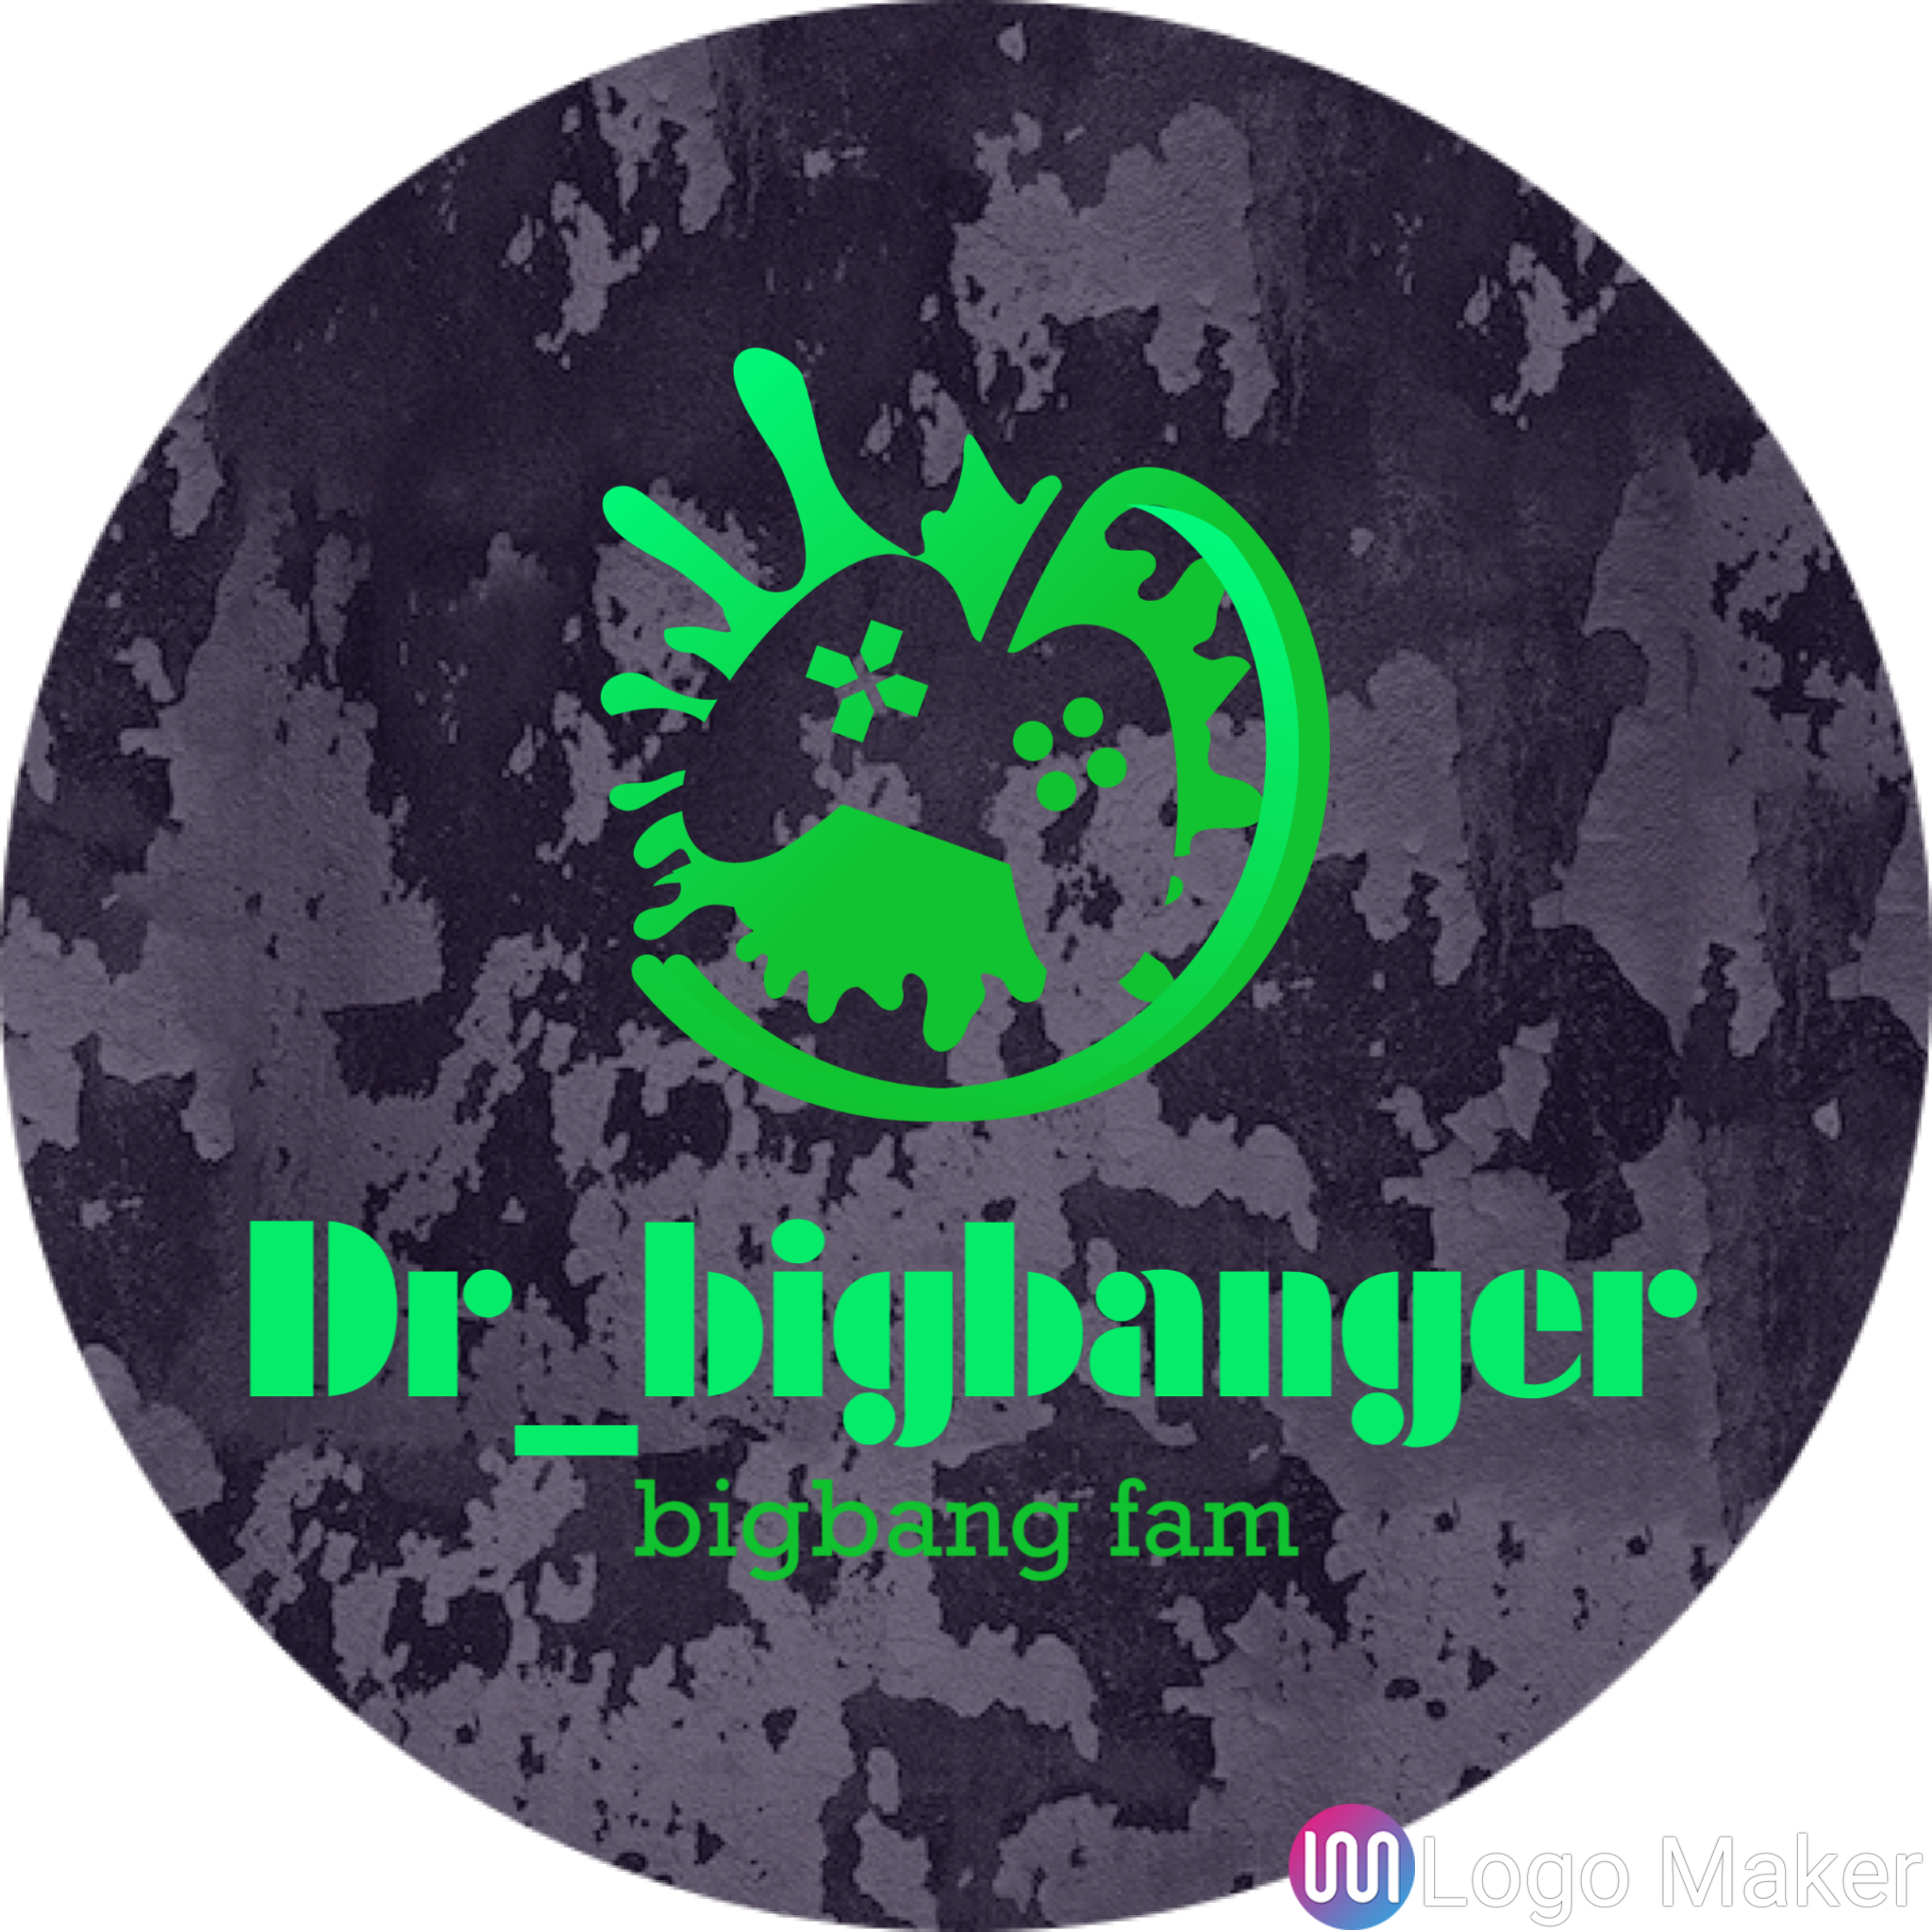 Dr_BigBanger profile picture